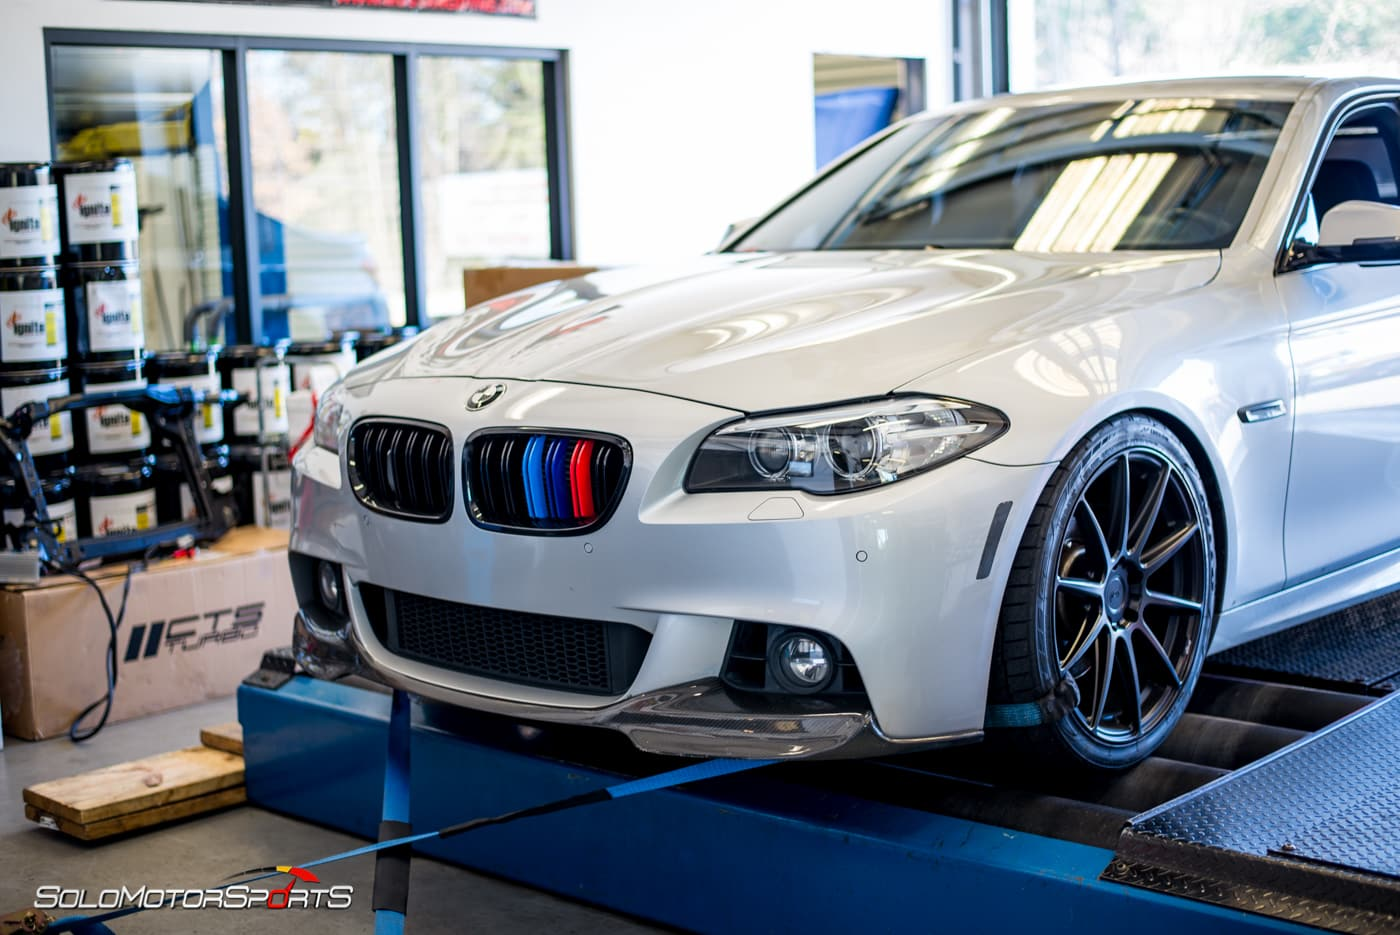 550i, atlanta, atlantasbest, bespoke, bmw, bmw service, bmwatlanta, custom, customexhaust, customtune, downpipes, dynojet, exhaust, f10, f10bmwm, hires, m5, mperformance, mpower, Msport, onestopshop, quiet, resonator, silencer, solo motorsports, tuning, work